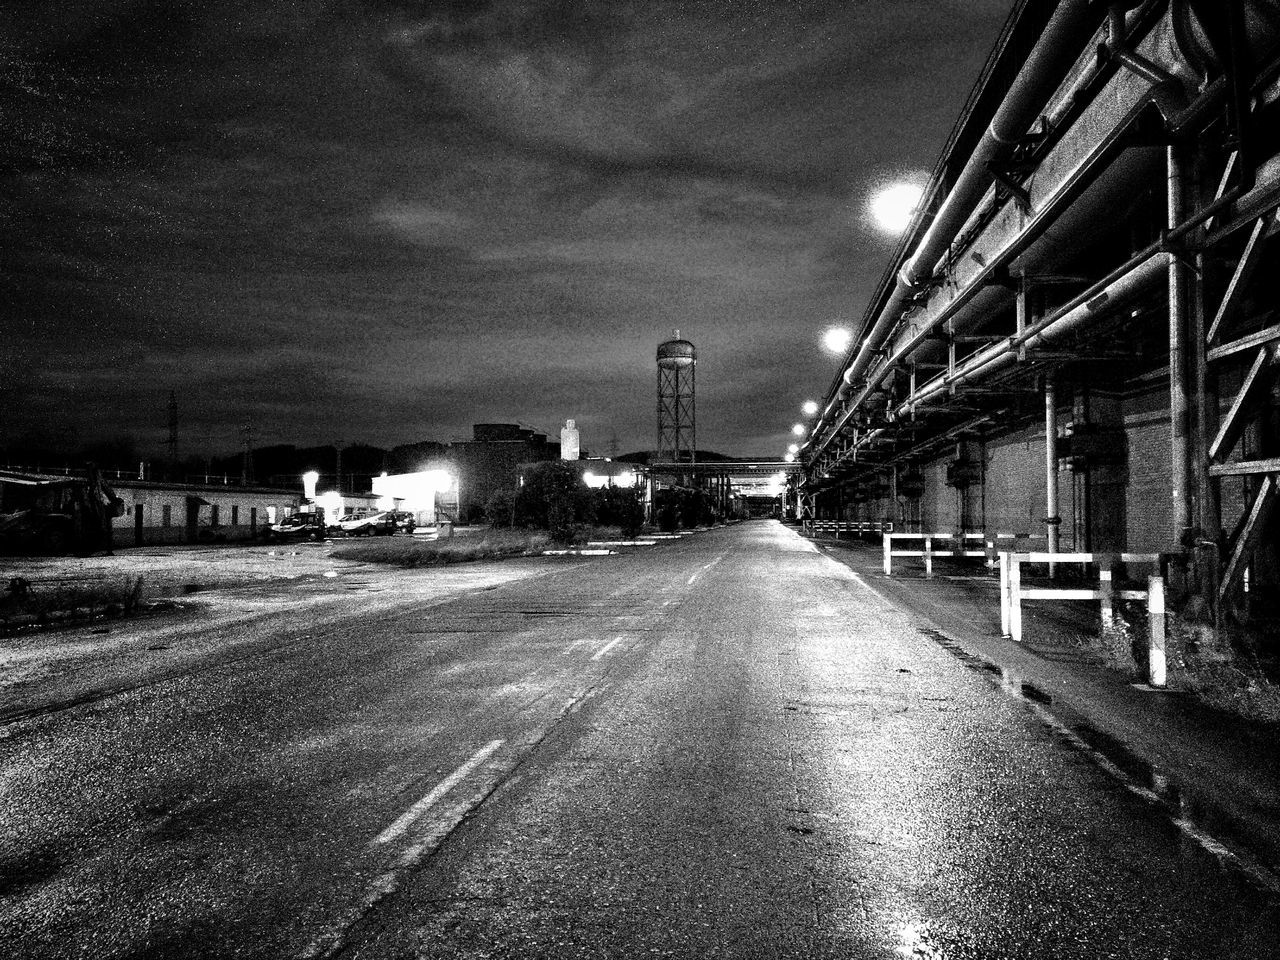 Gloomy night view in the factory. After The Rain Black&white Blackandwhite Photography Building Exterior Deserted Deserted Factory Eyeem Industrial View Factory Night View Getting Creative Gloomy Weather Industrial Landscape Industry Night Lighting Night Working Nightphotography Perspective Road Sad Night Scene Showcase: January Street Light The Way Forward